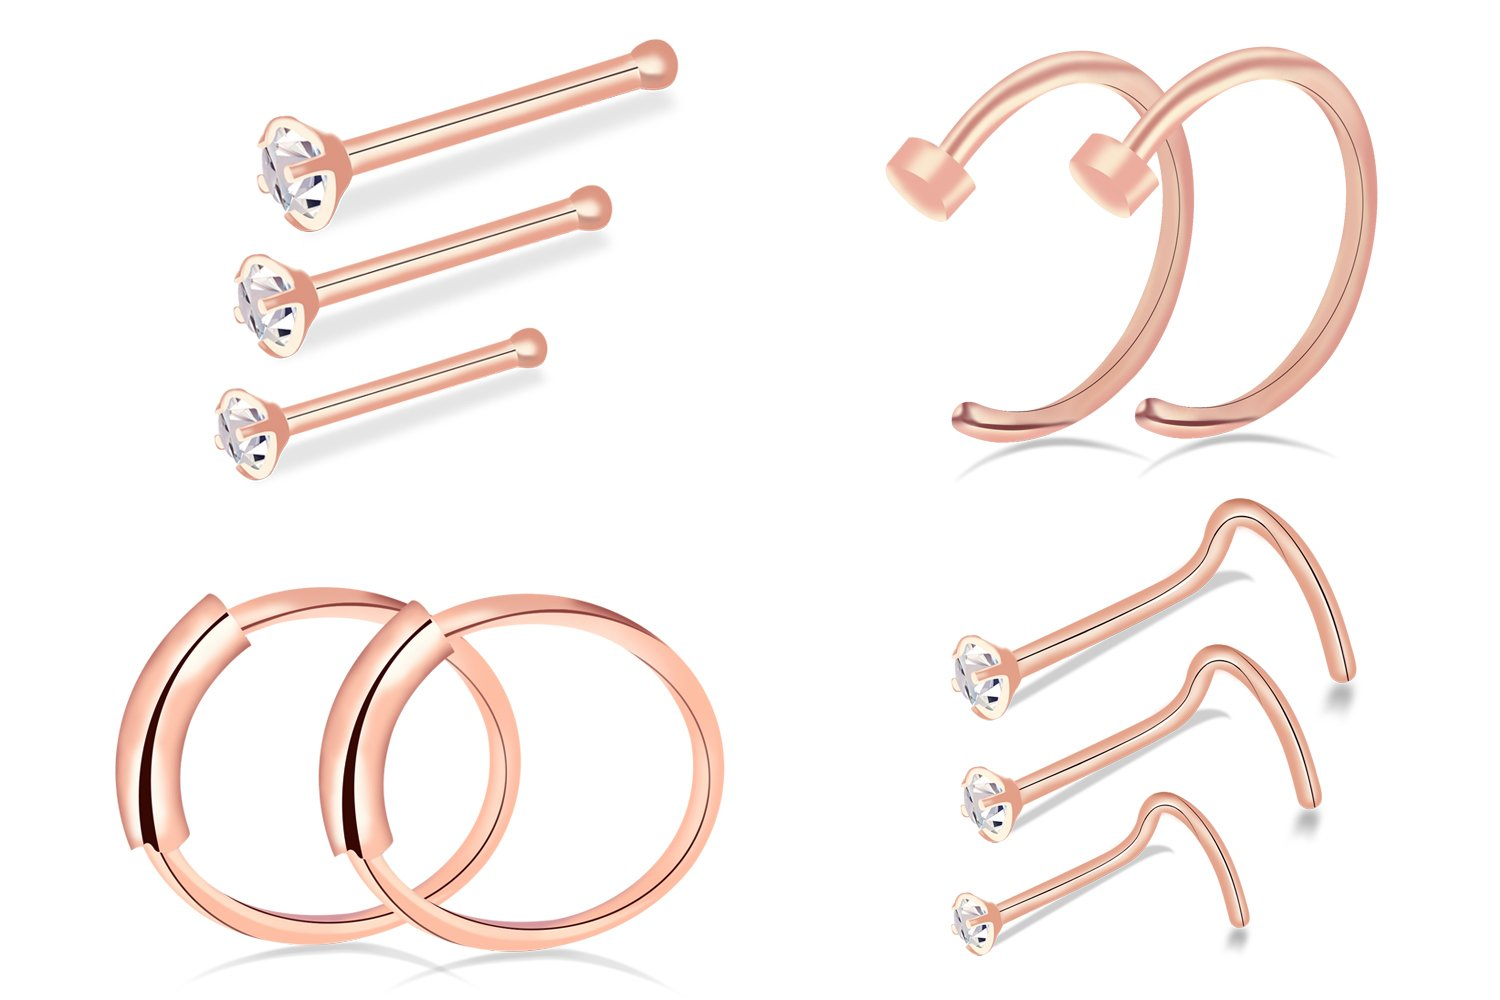 Vesungimey Nose Ring Hoop - 20G 8mm CZ Nose Rings Studs Piercings Hoop Body Jewelry 304 Stainless Steel 1.5mm 2mm 2.5mm(10pack rose gold)